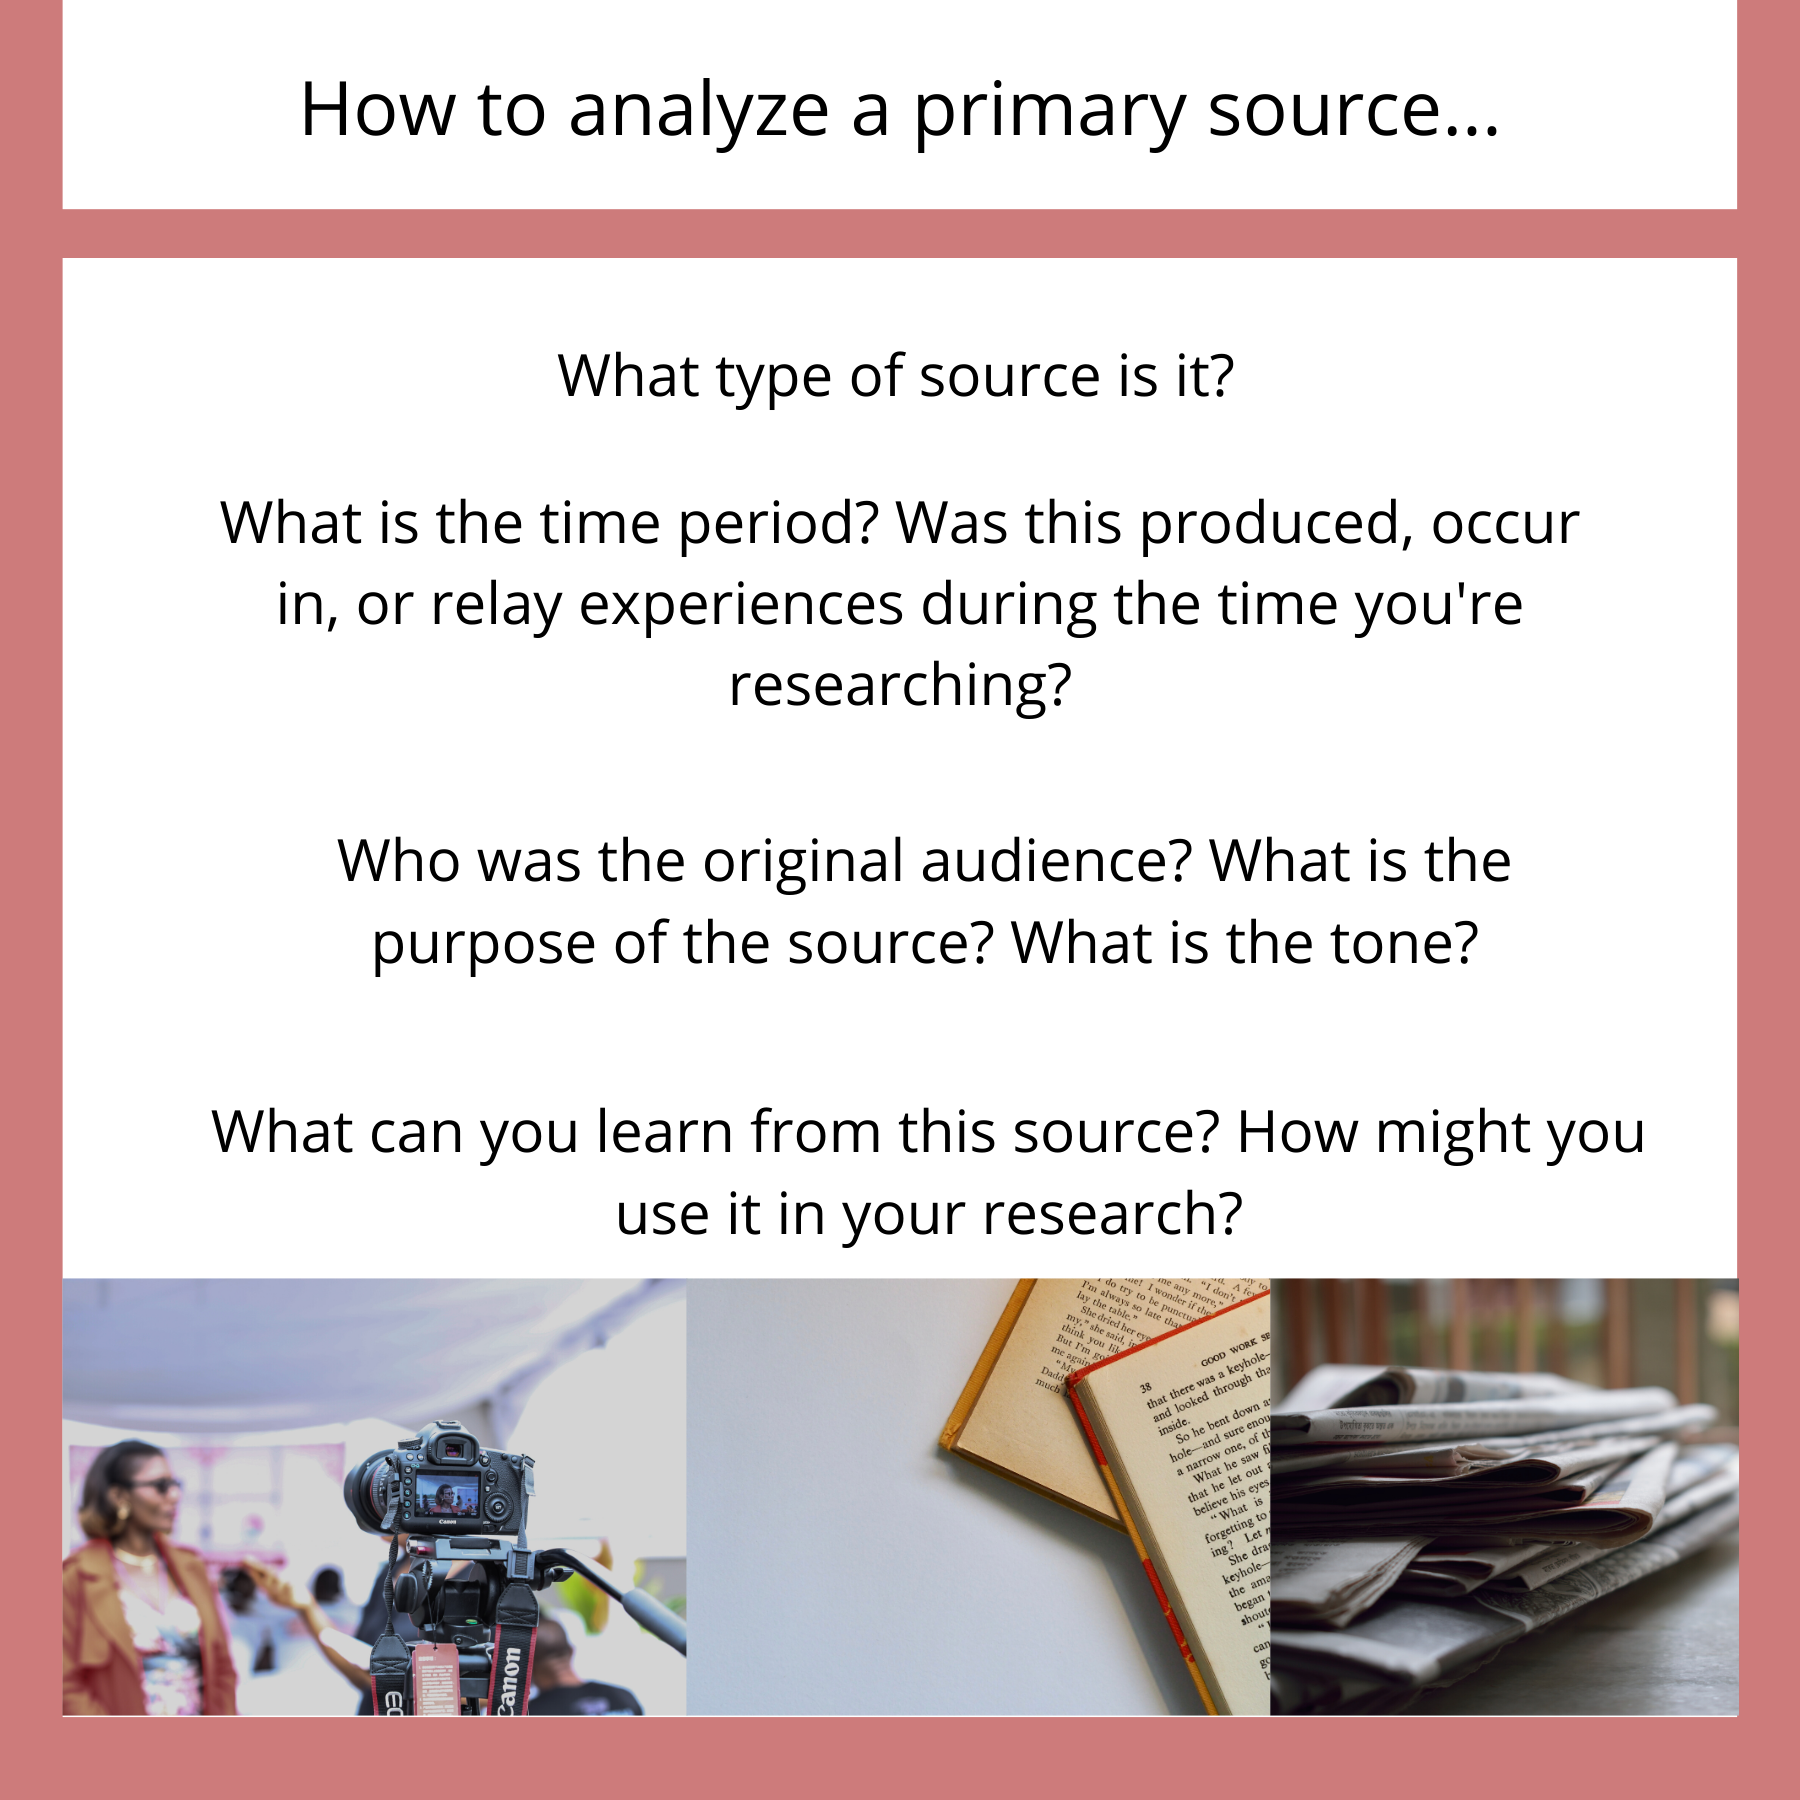 How to analyze a primary source: type of source, time period, original audience, purpose, and tone? What can you learn from this source? How might you use it in your research?